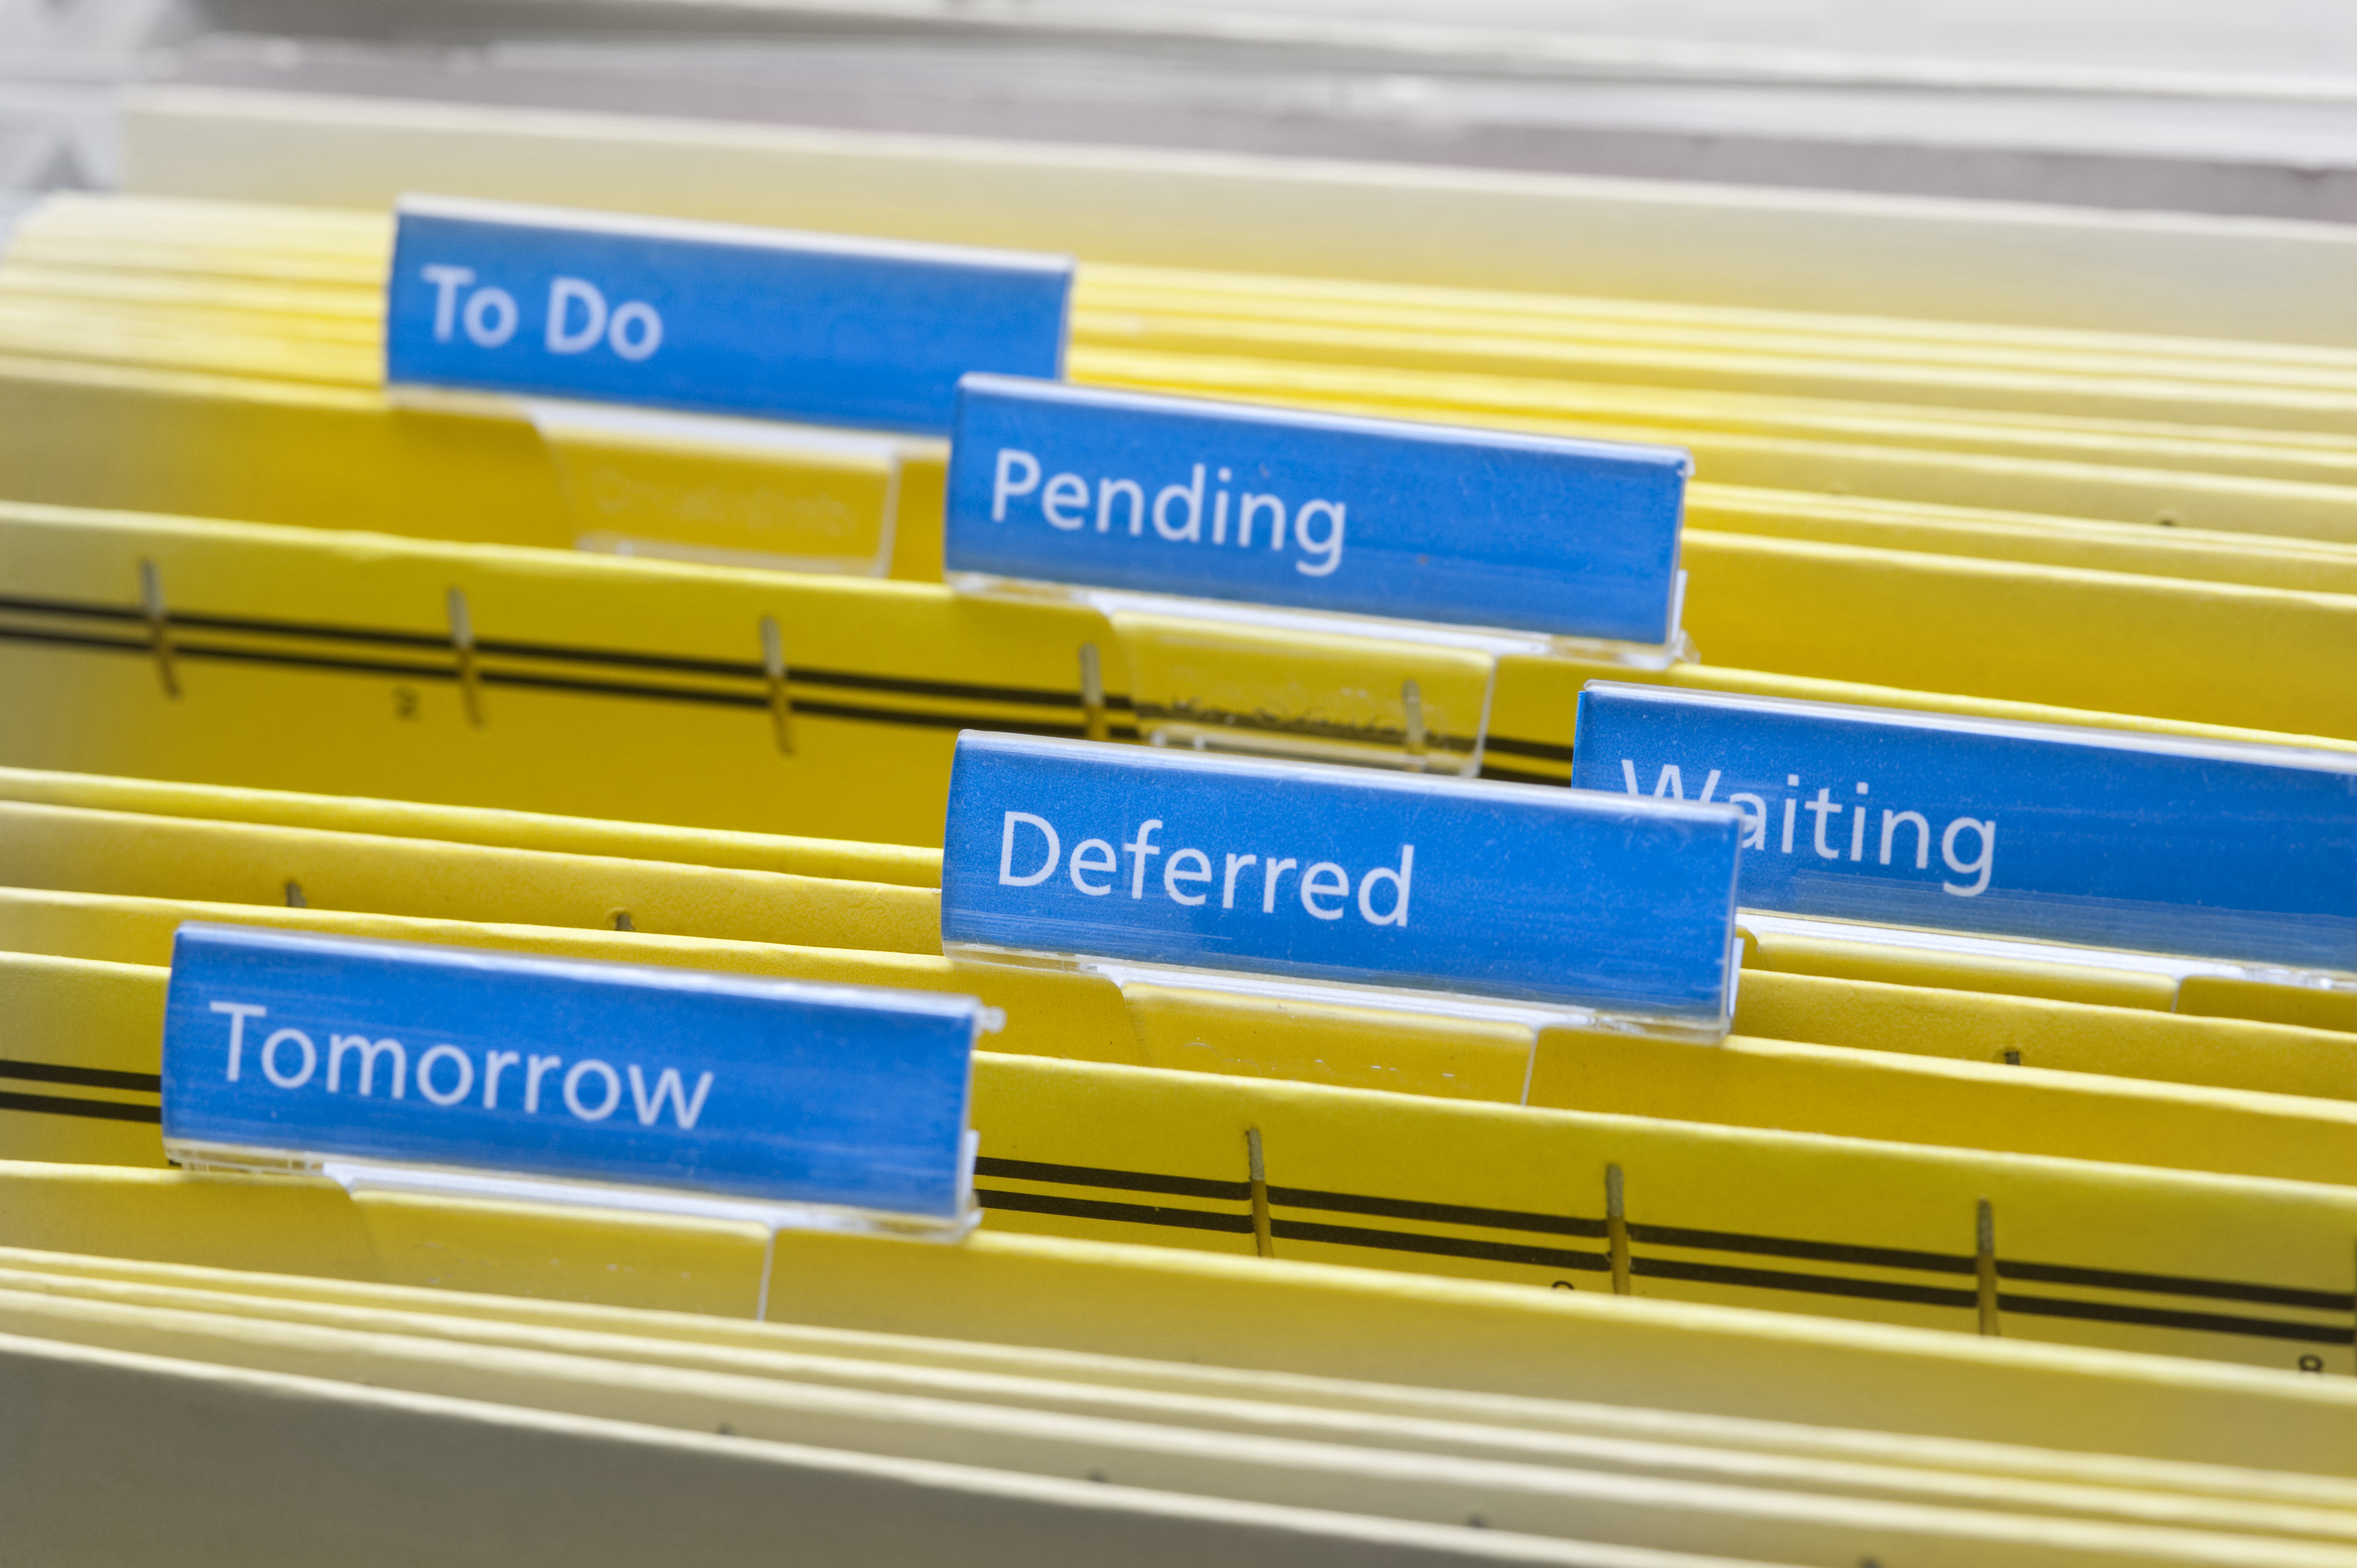 Close up Yellow Folders with Blue Labels for Work Procrastination Concept, Emphasizing To Do, Pending, Waiting, Deferred and Tomorrow Keywords.